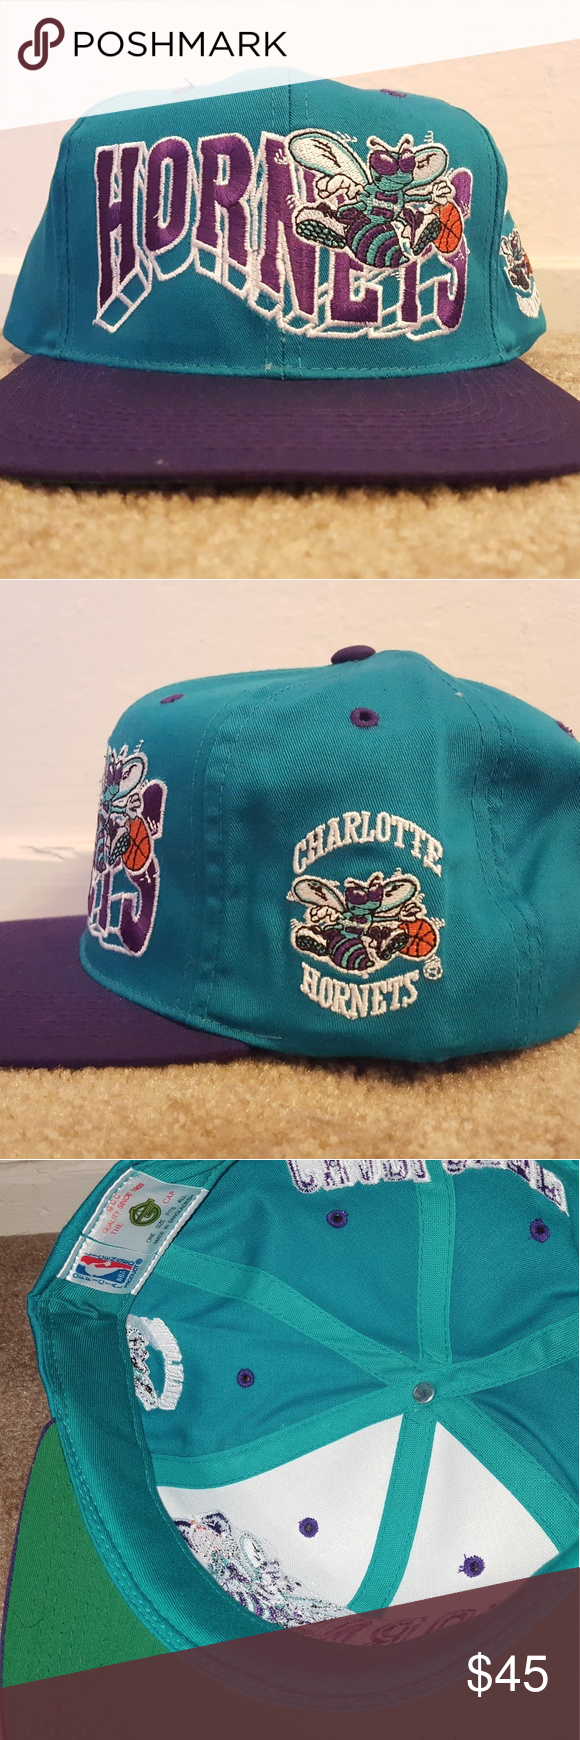 Vintage Charlotte Hornets Snapback New condition Never worn Accessories Hats ed64f84c1506